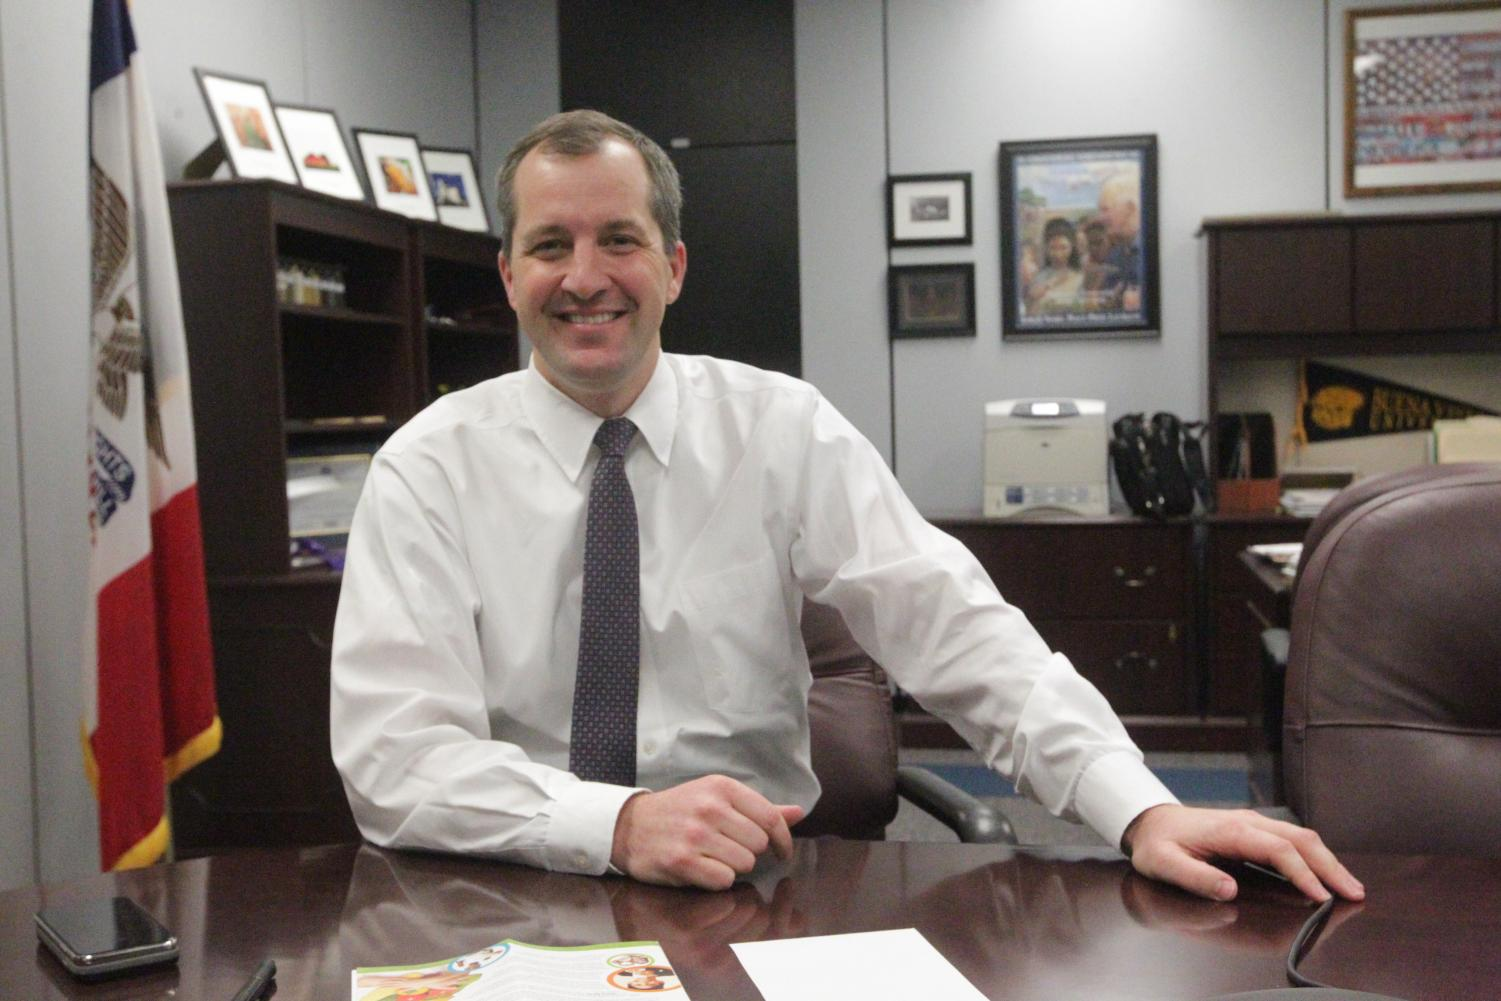 Iowa Secretary of Agriculture Mike Naig poses for a photo in his office in Des Moines on Jan. 14, 2019.